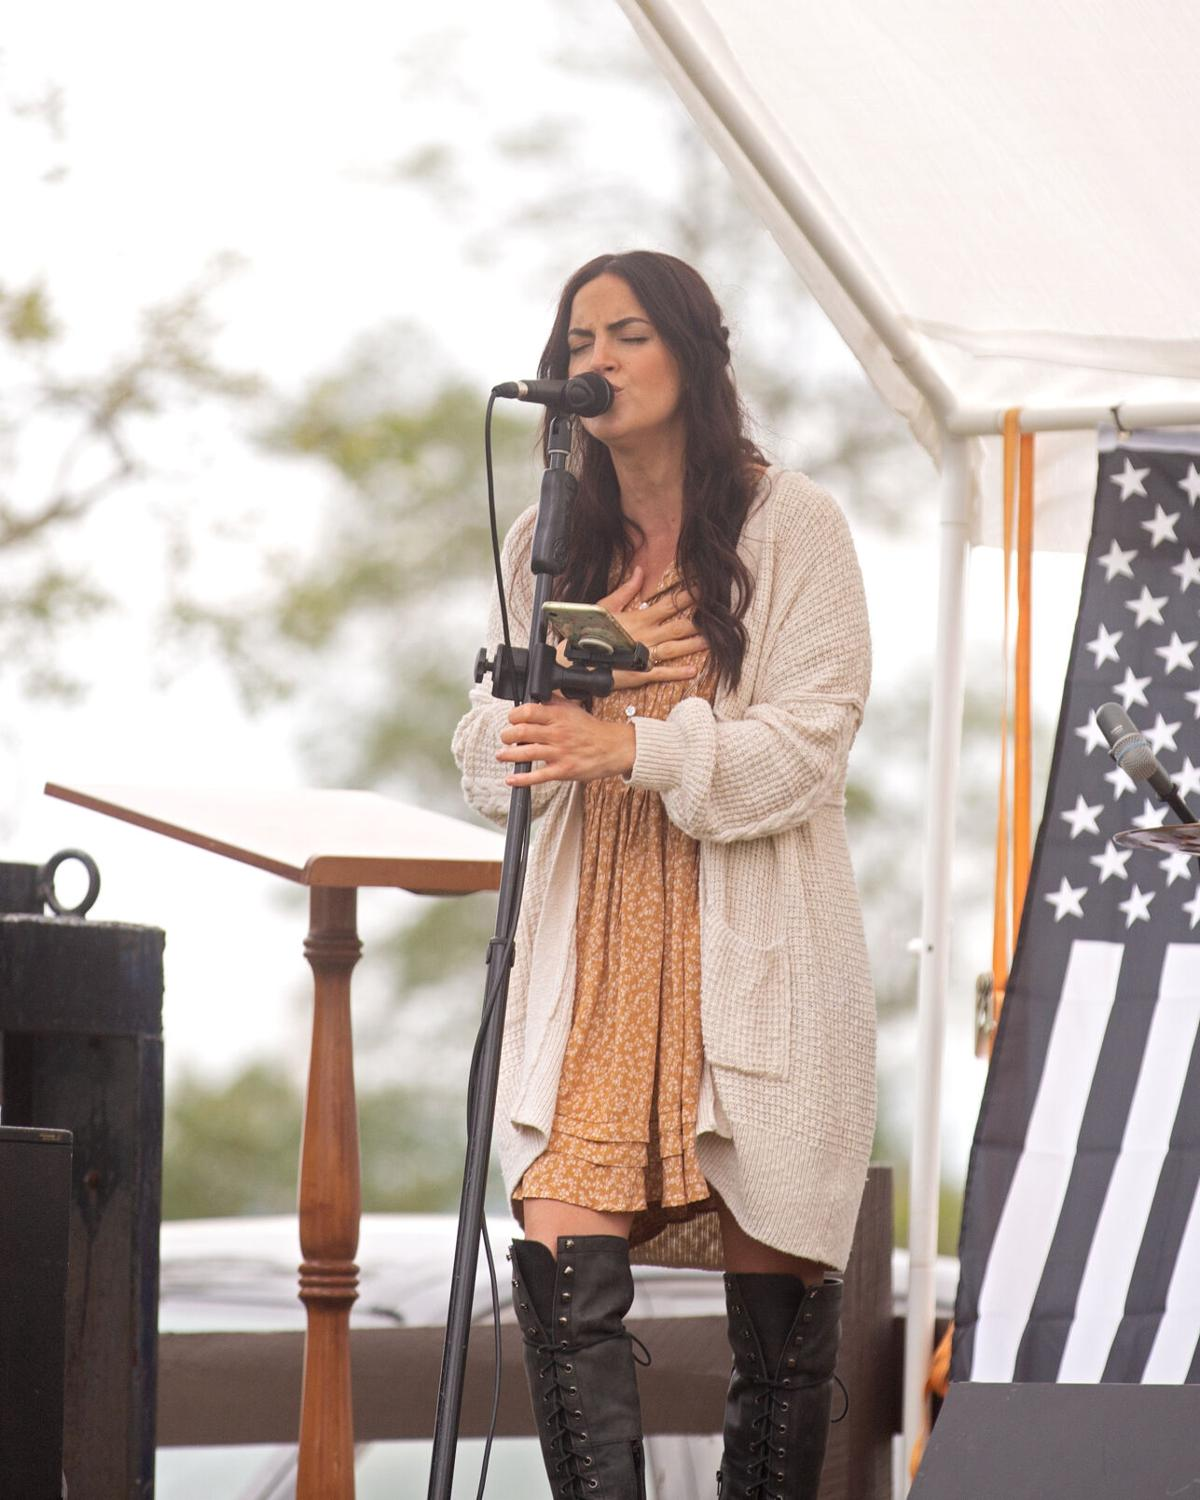 Unity, American Dream highlighted at 41st Pig Roast